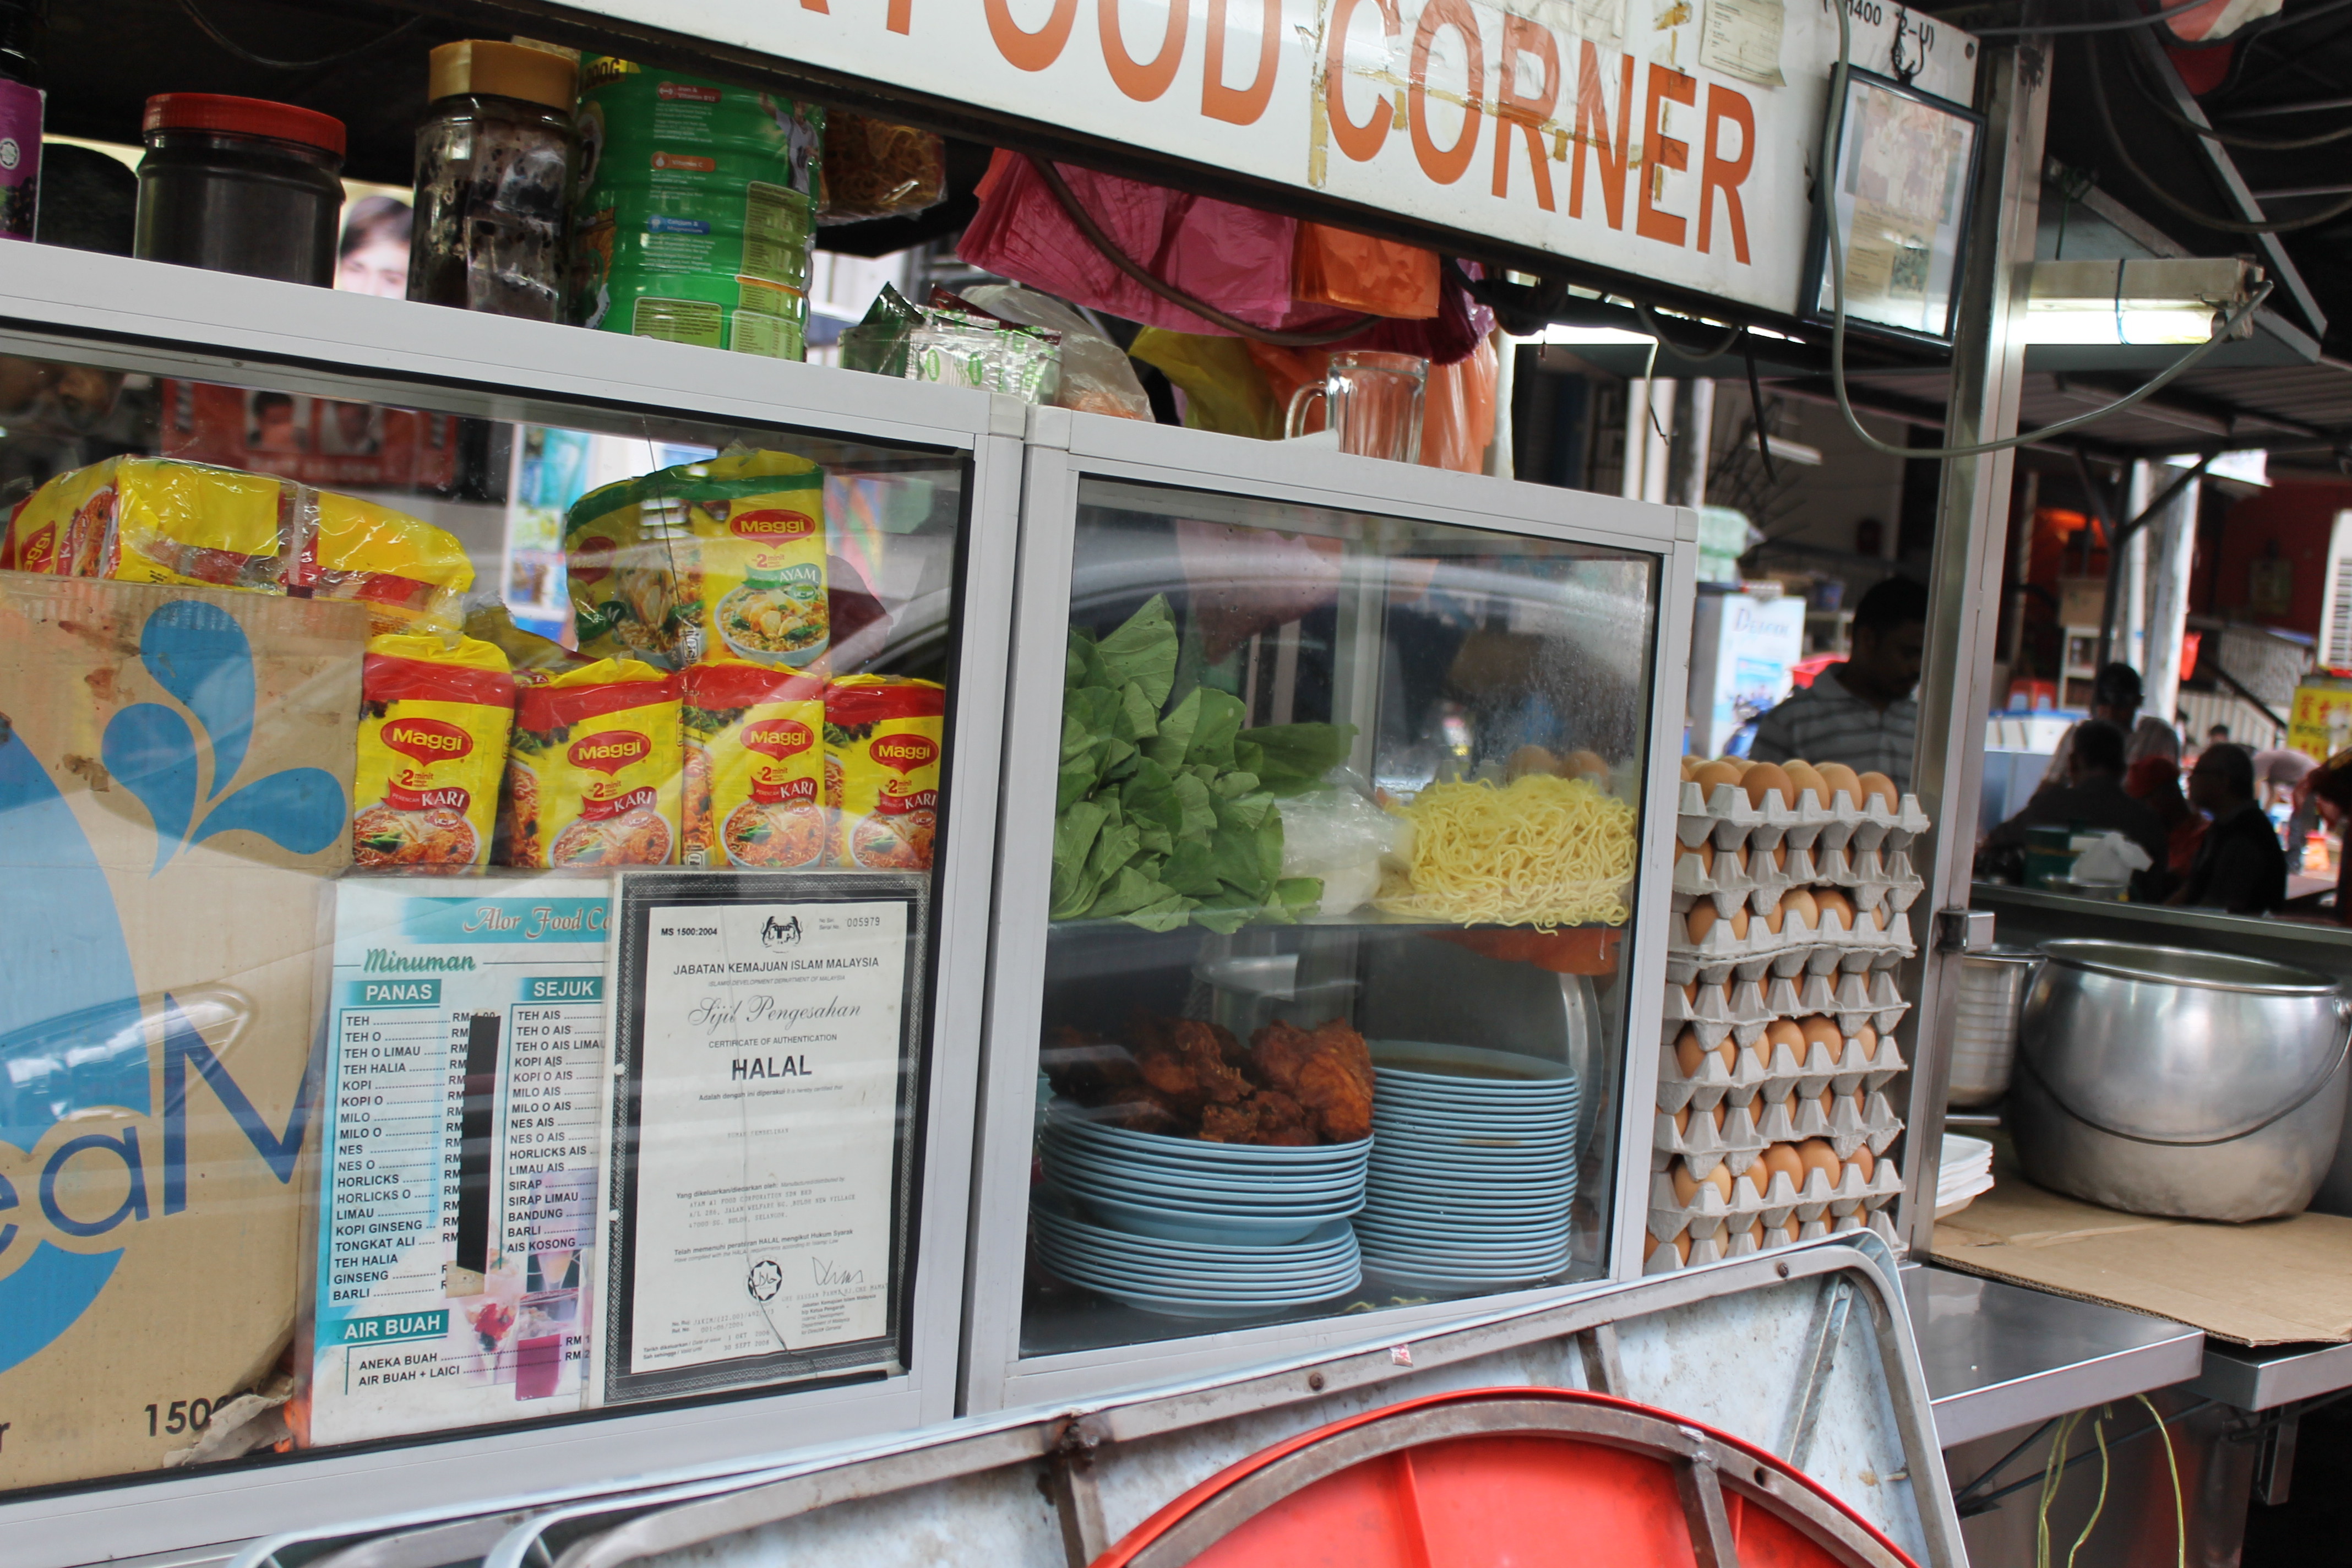 This stir fried noodle stand was in Kuala Lumpur